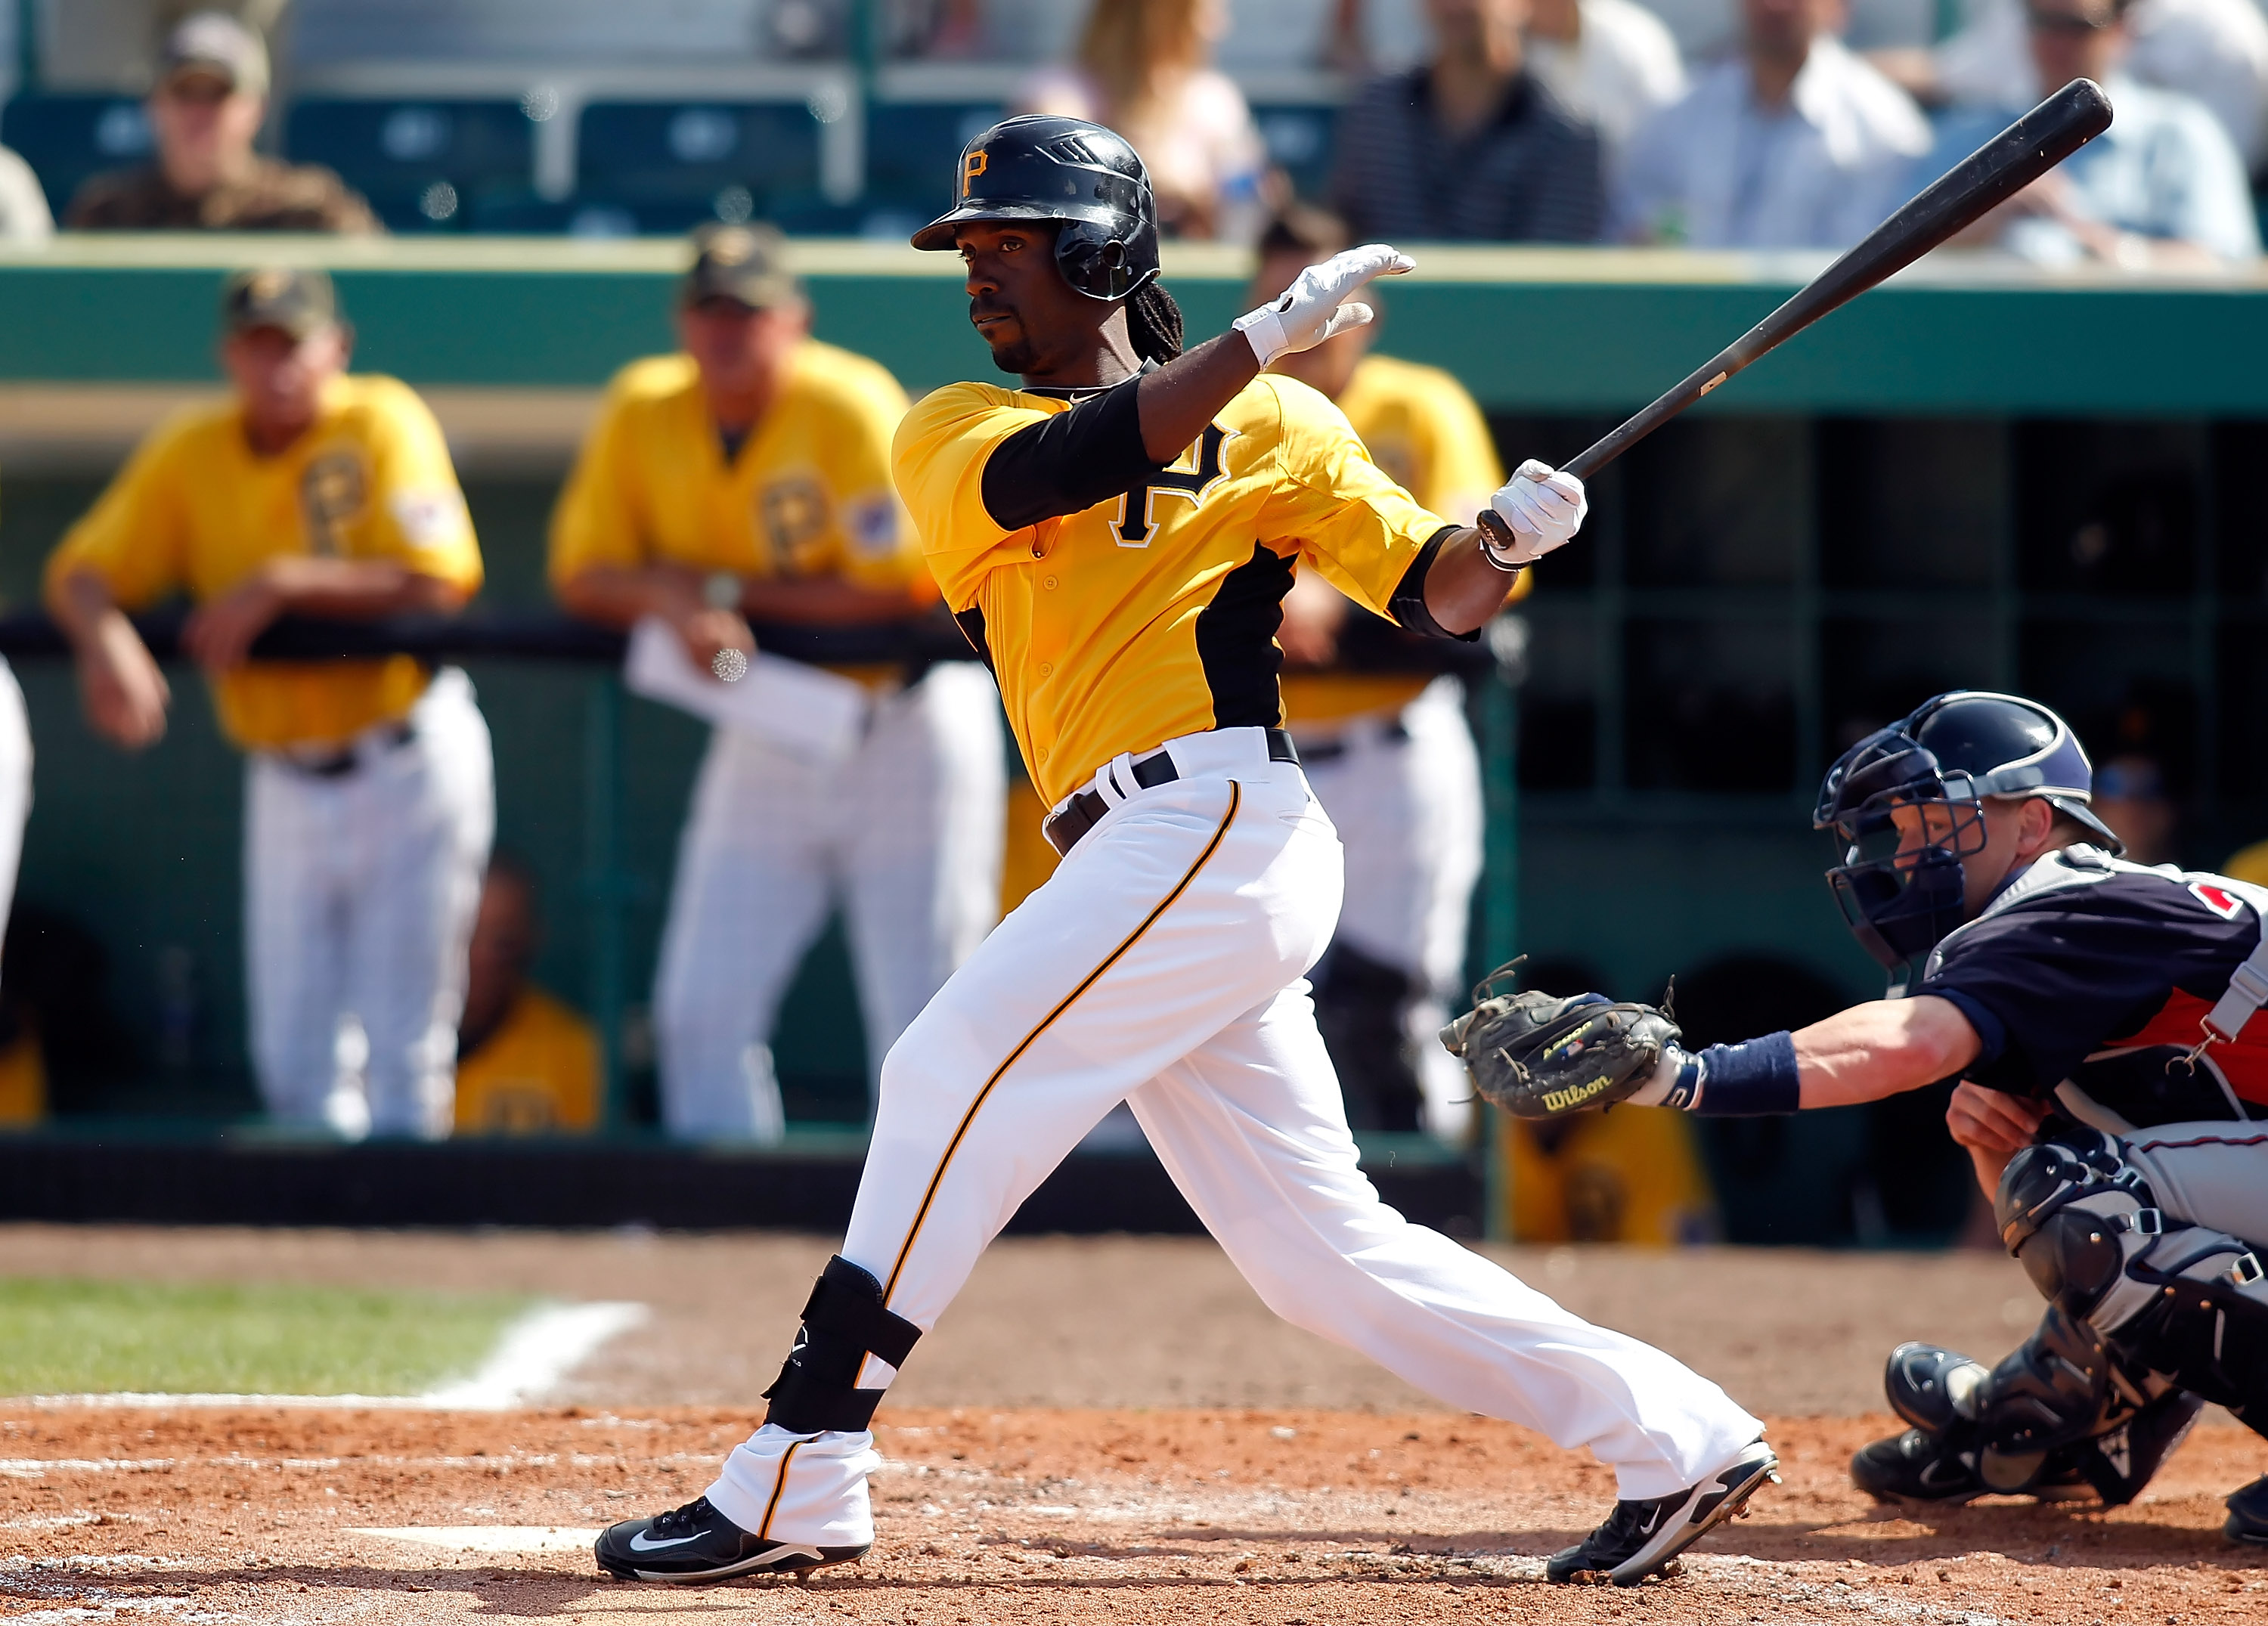 BRADENTON, FL - MARCH 02:  Outfielder Andrew McCutchen #22 of the Pittsburgh Pirates fouls off a pitch against the Minnesota Twins during a Grapefruit League Spring Training Game at McKechnie Field on March 2, 2011 in Bradenton, Florida.  (Photo by J. Mer